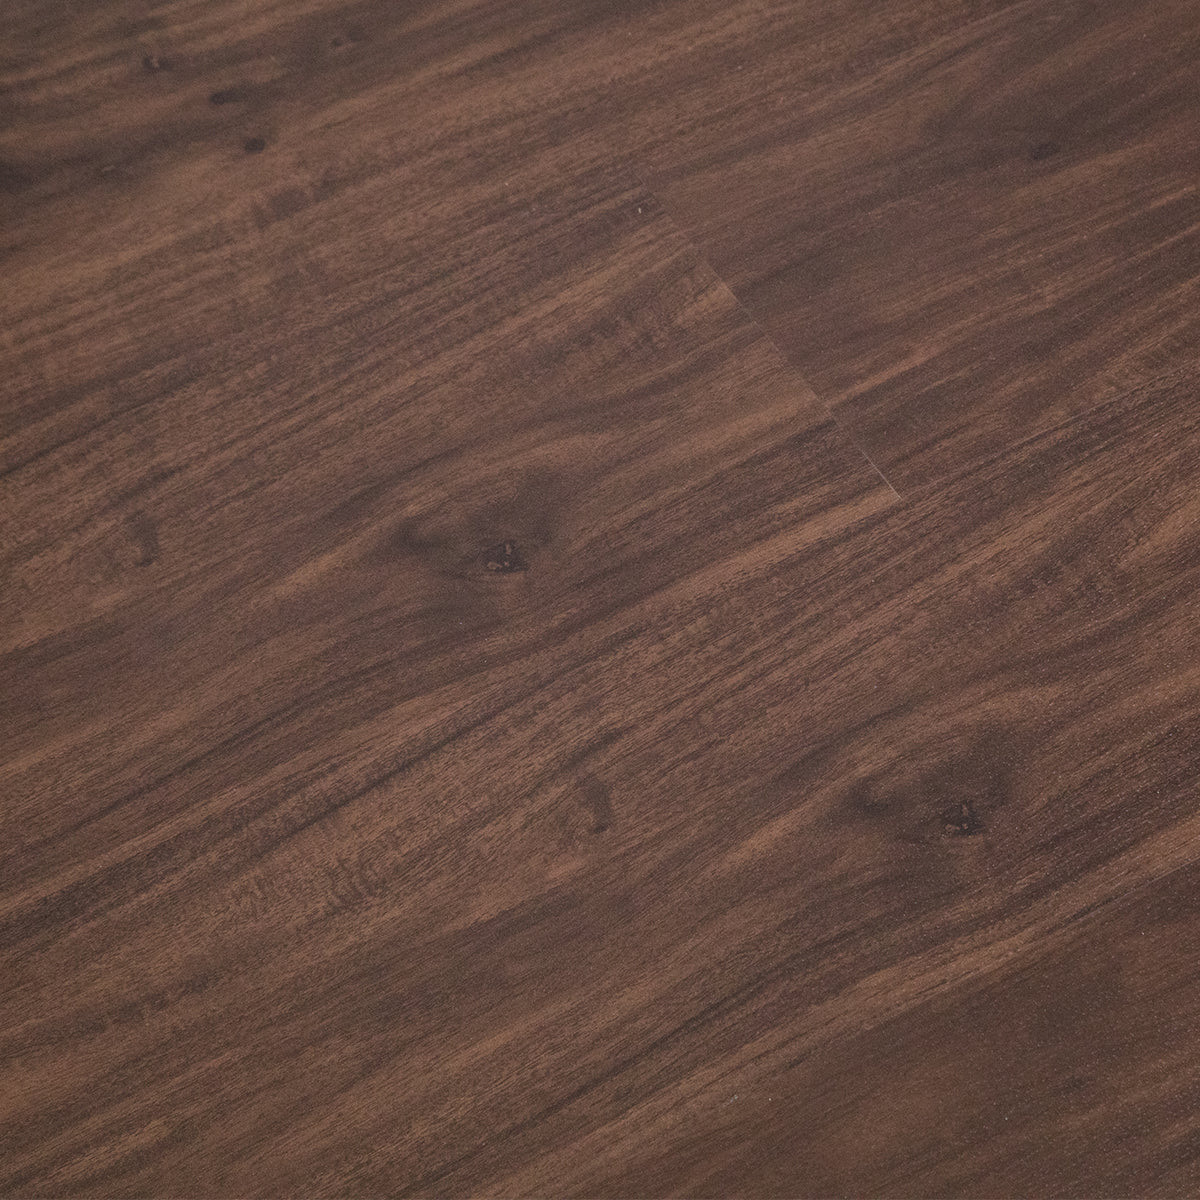 23.6 sq.ft Redwood Click Floating Floor Rigid Core Luxury Vinyl Plank Flooring - Foam Back